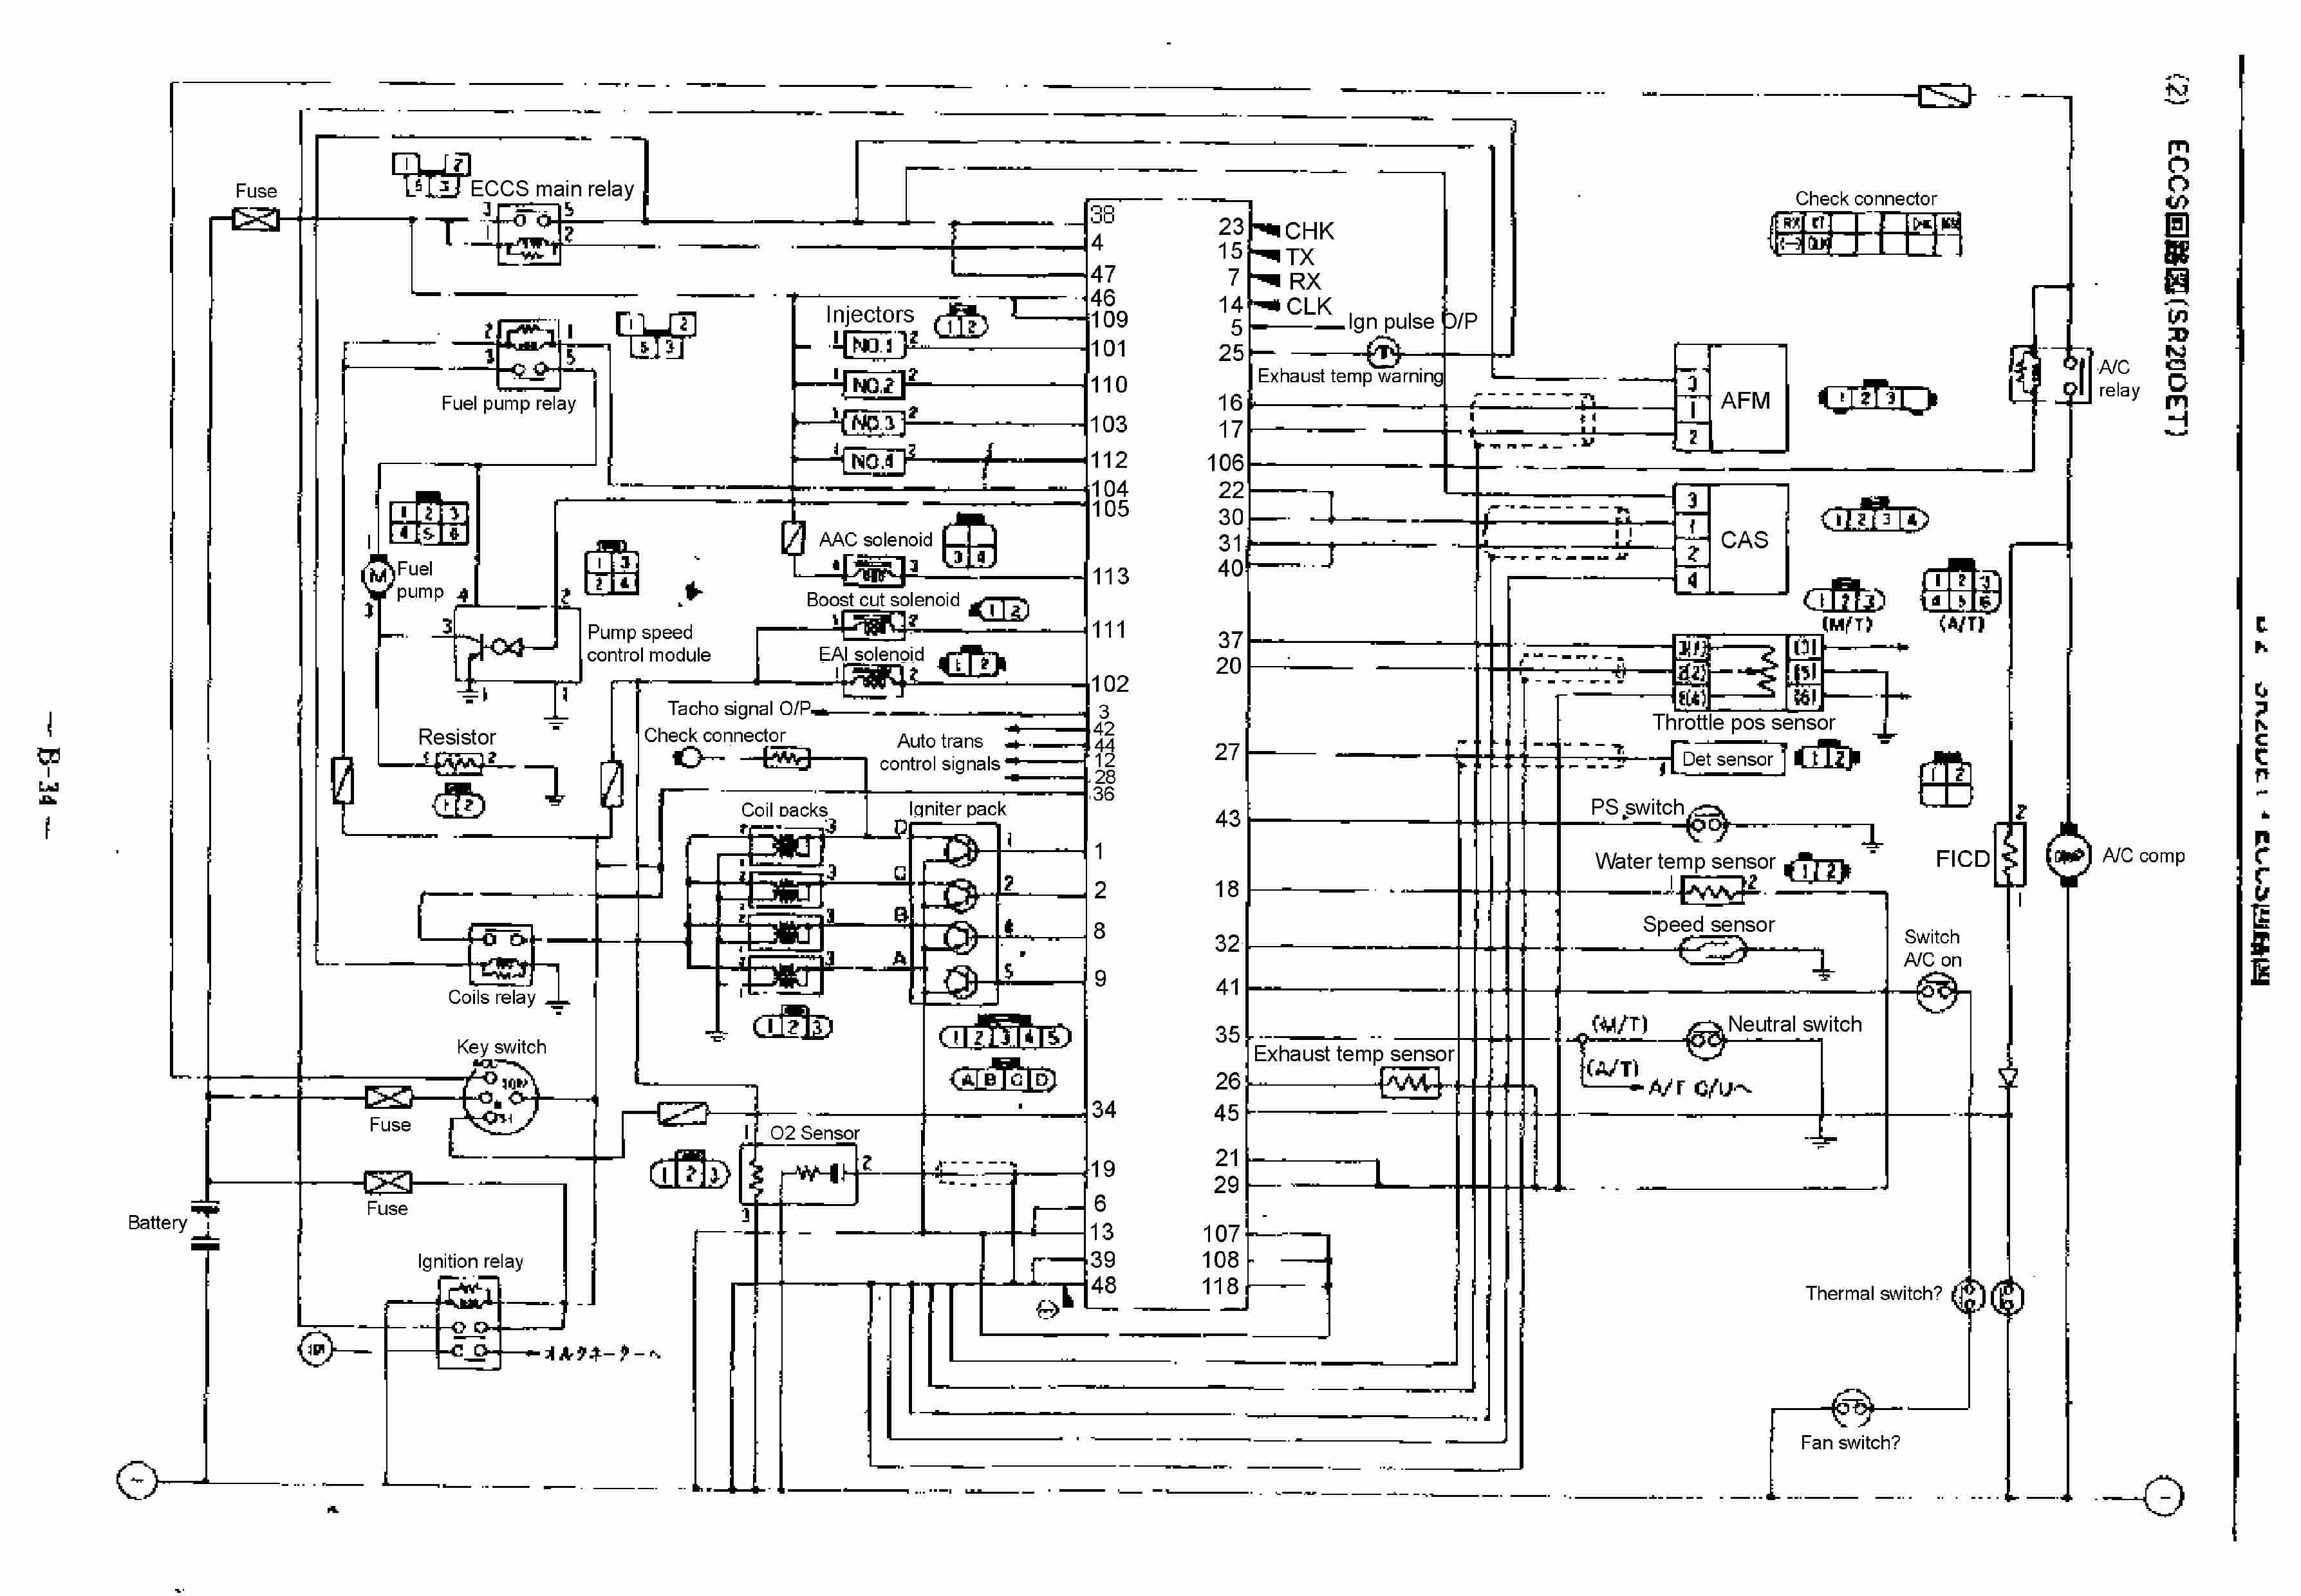 sr20 wiring diagram enthusiast wiring diagrams u2022 rh rasalibre co engine wiring diagram for 08 bmw e64 engine wiring diagram for yerf dog rover